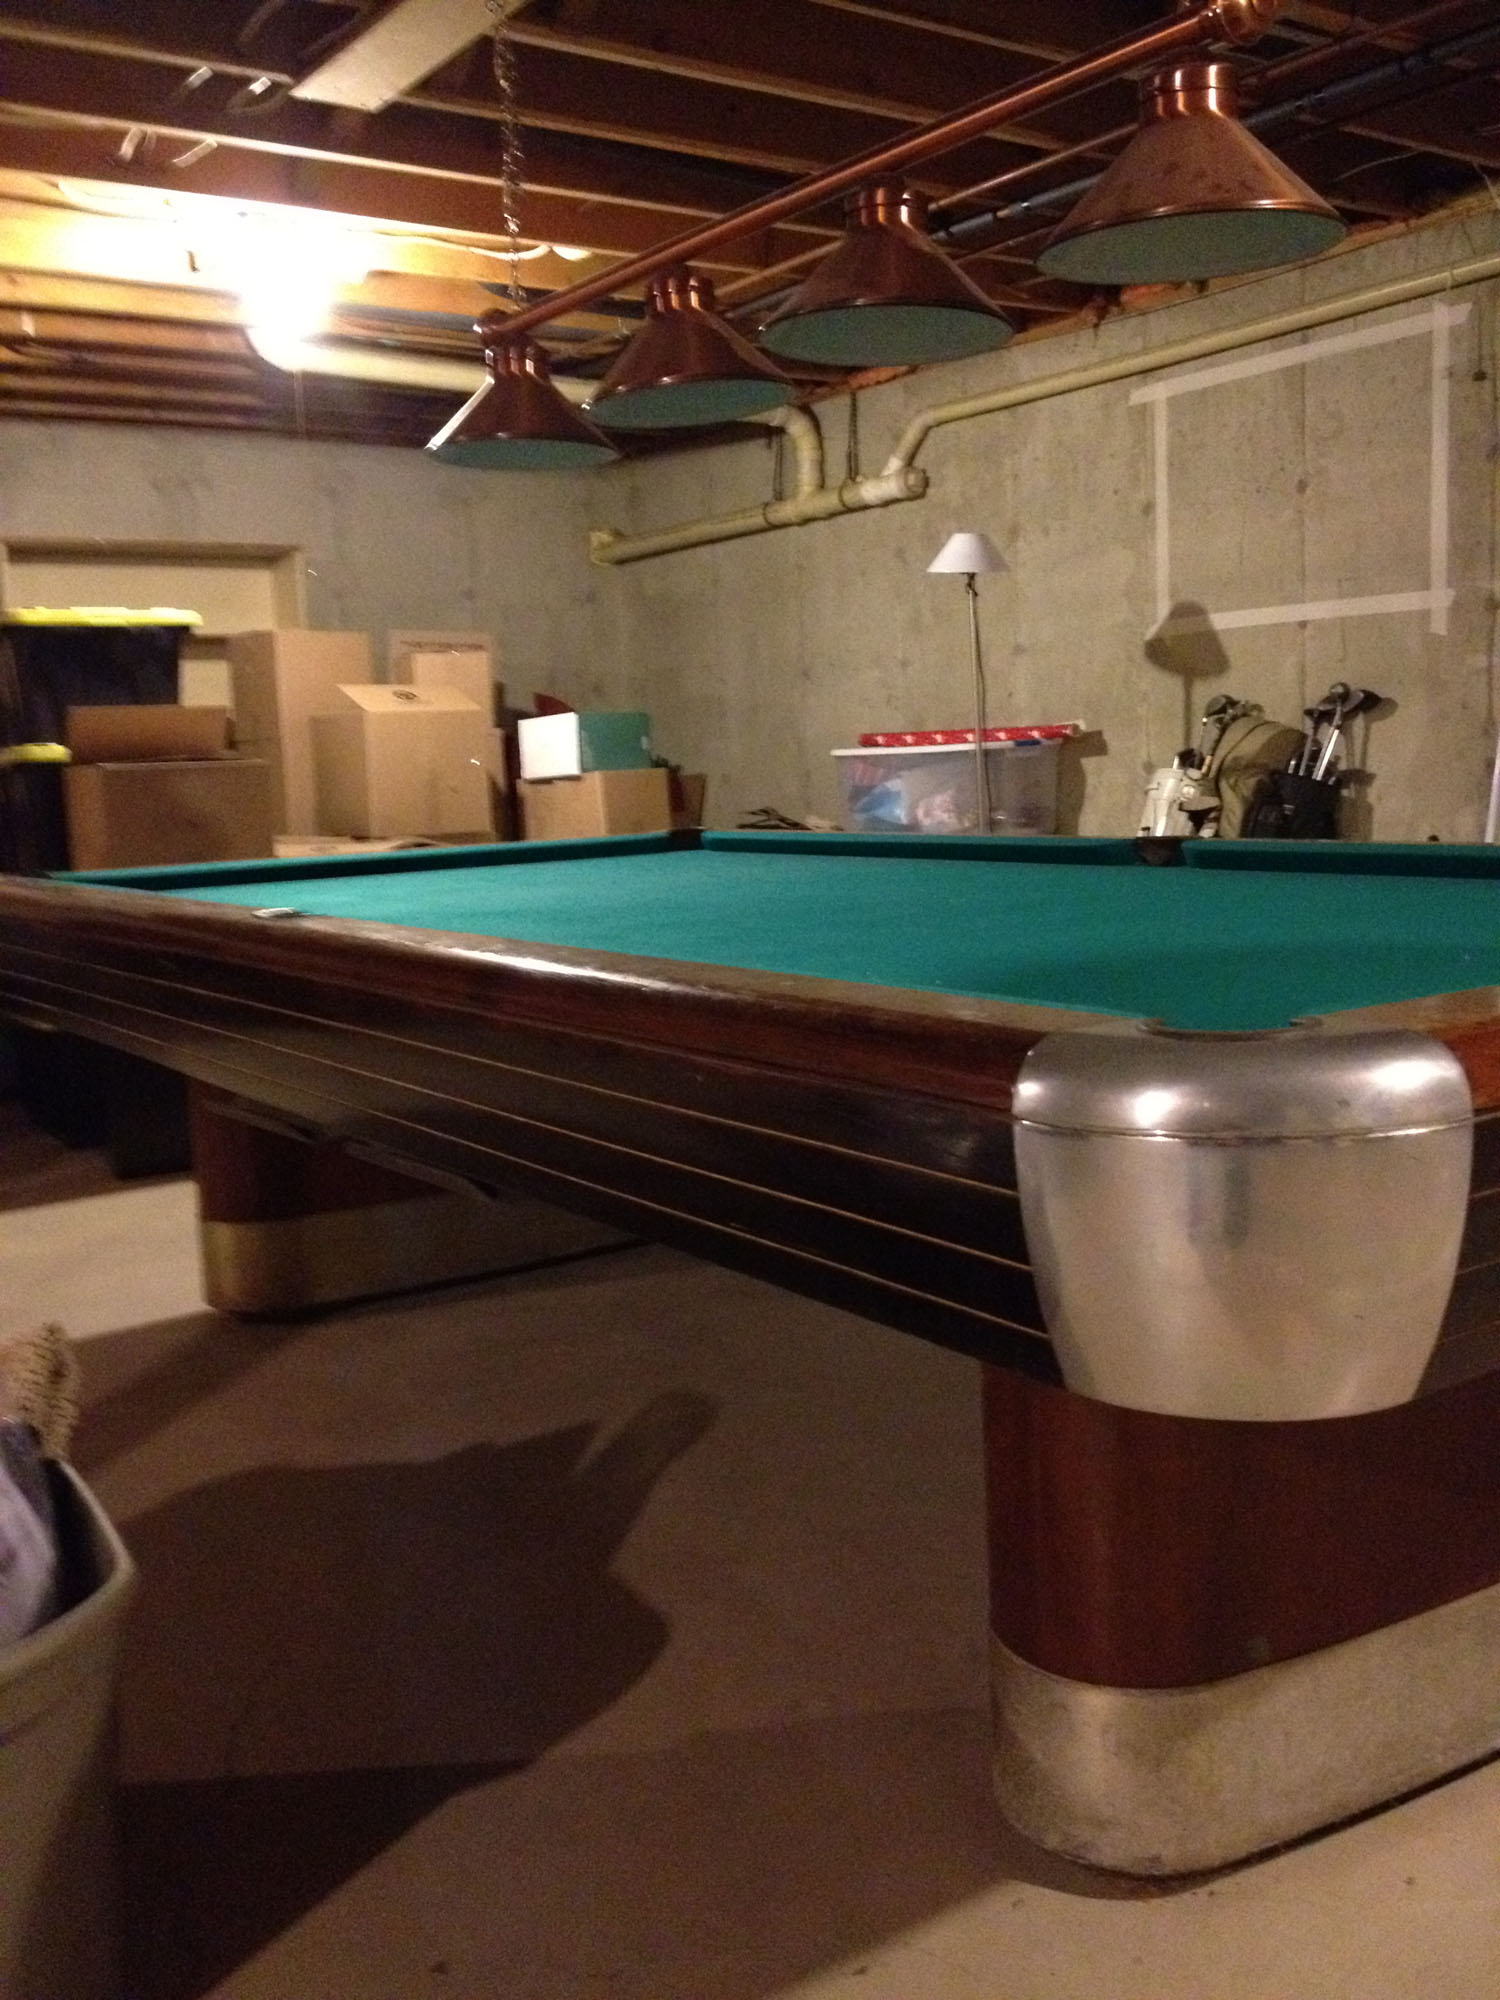 1945 1946 brunswick balke collender 10ft snooker table for